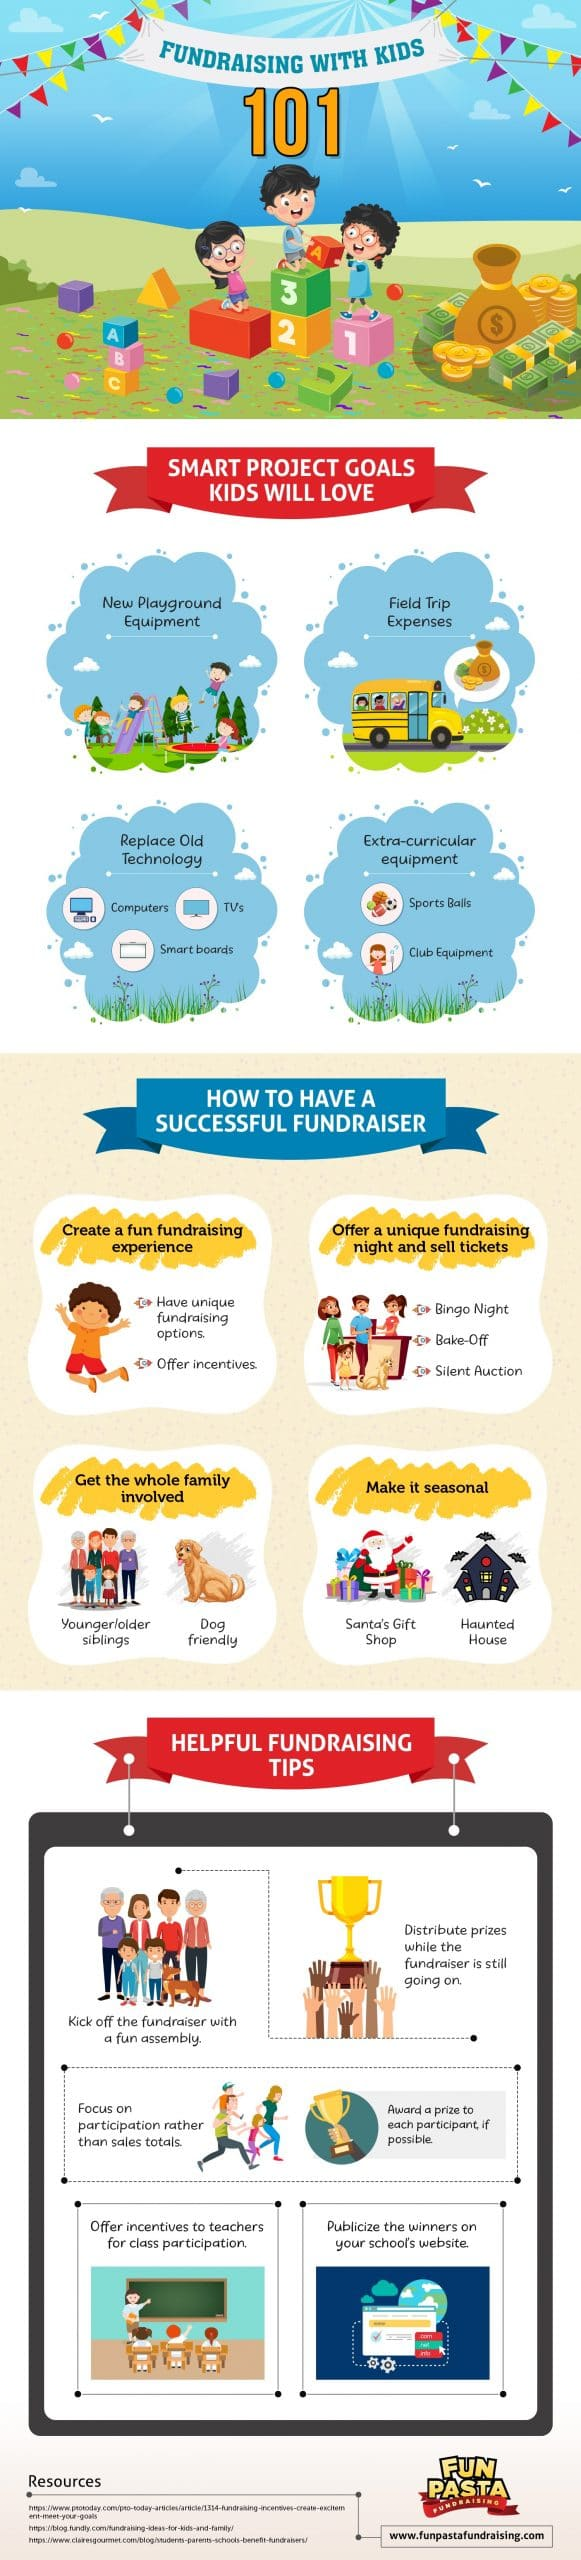 Fun Pasta Fundraising- Fundraising with Kids 101 | Easy and fun guide to running a fundraiser! Make your event a success!